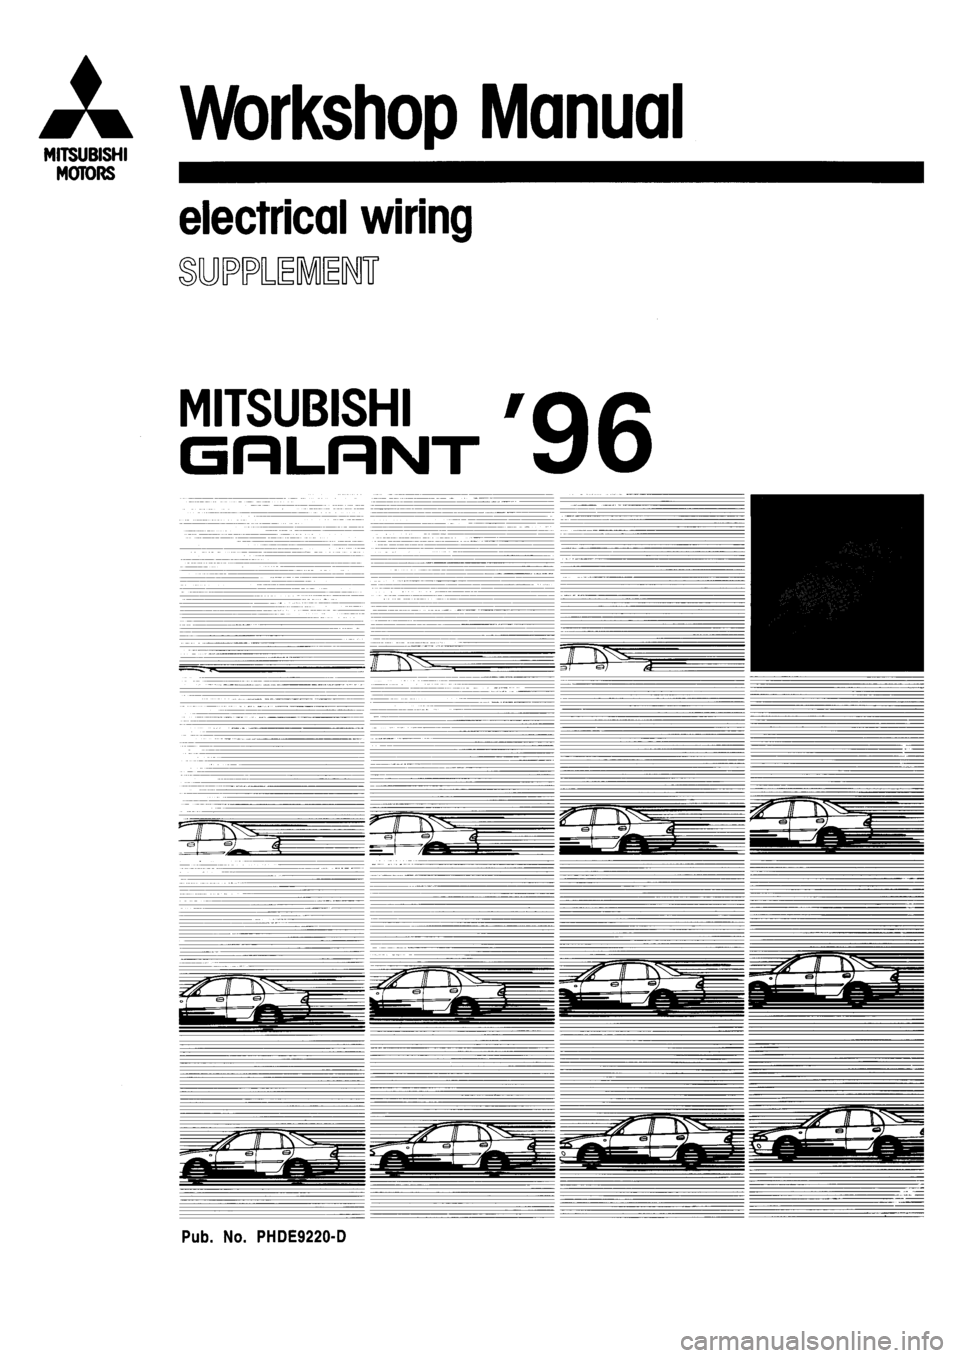 Mitsubishi galant 1996 7g electrical wiring diagram workshop manual asfbconference2016 Images